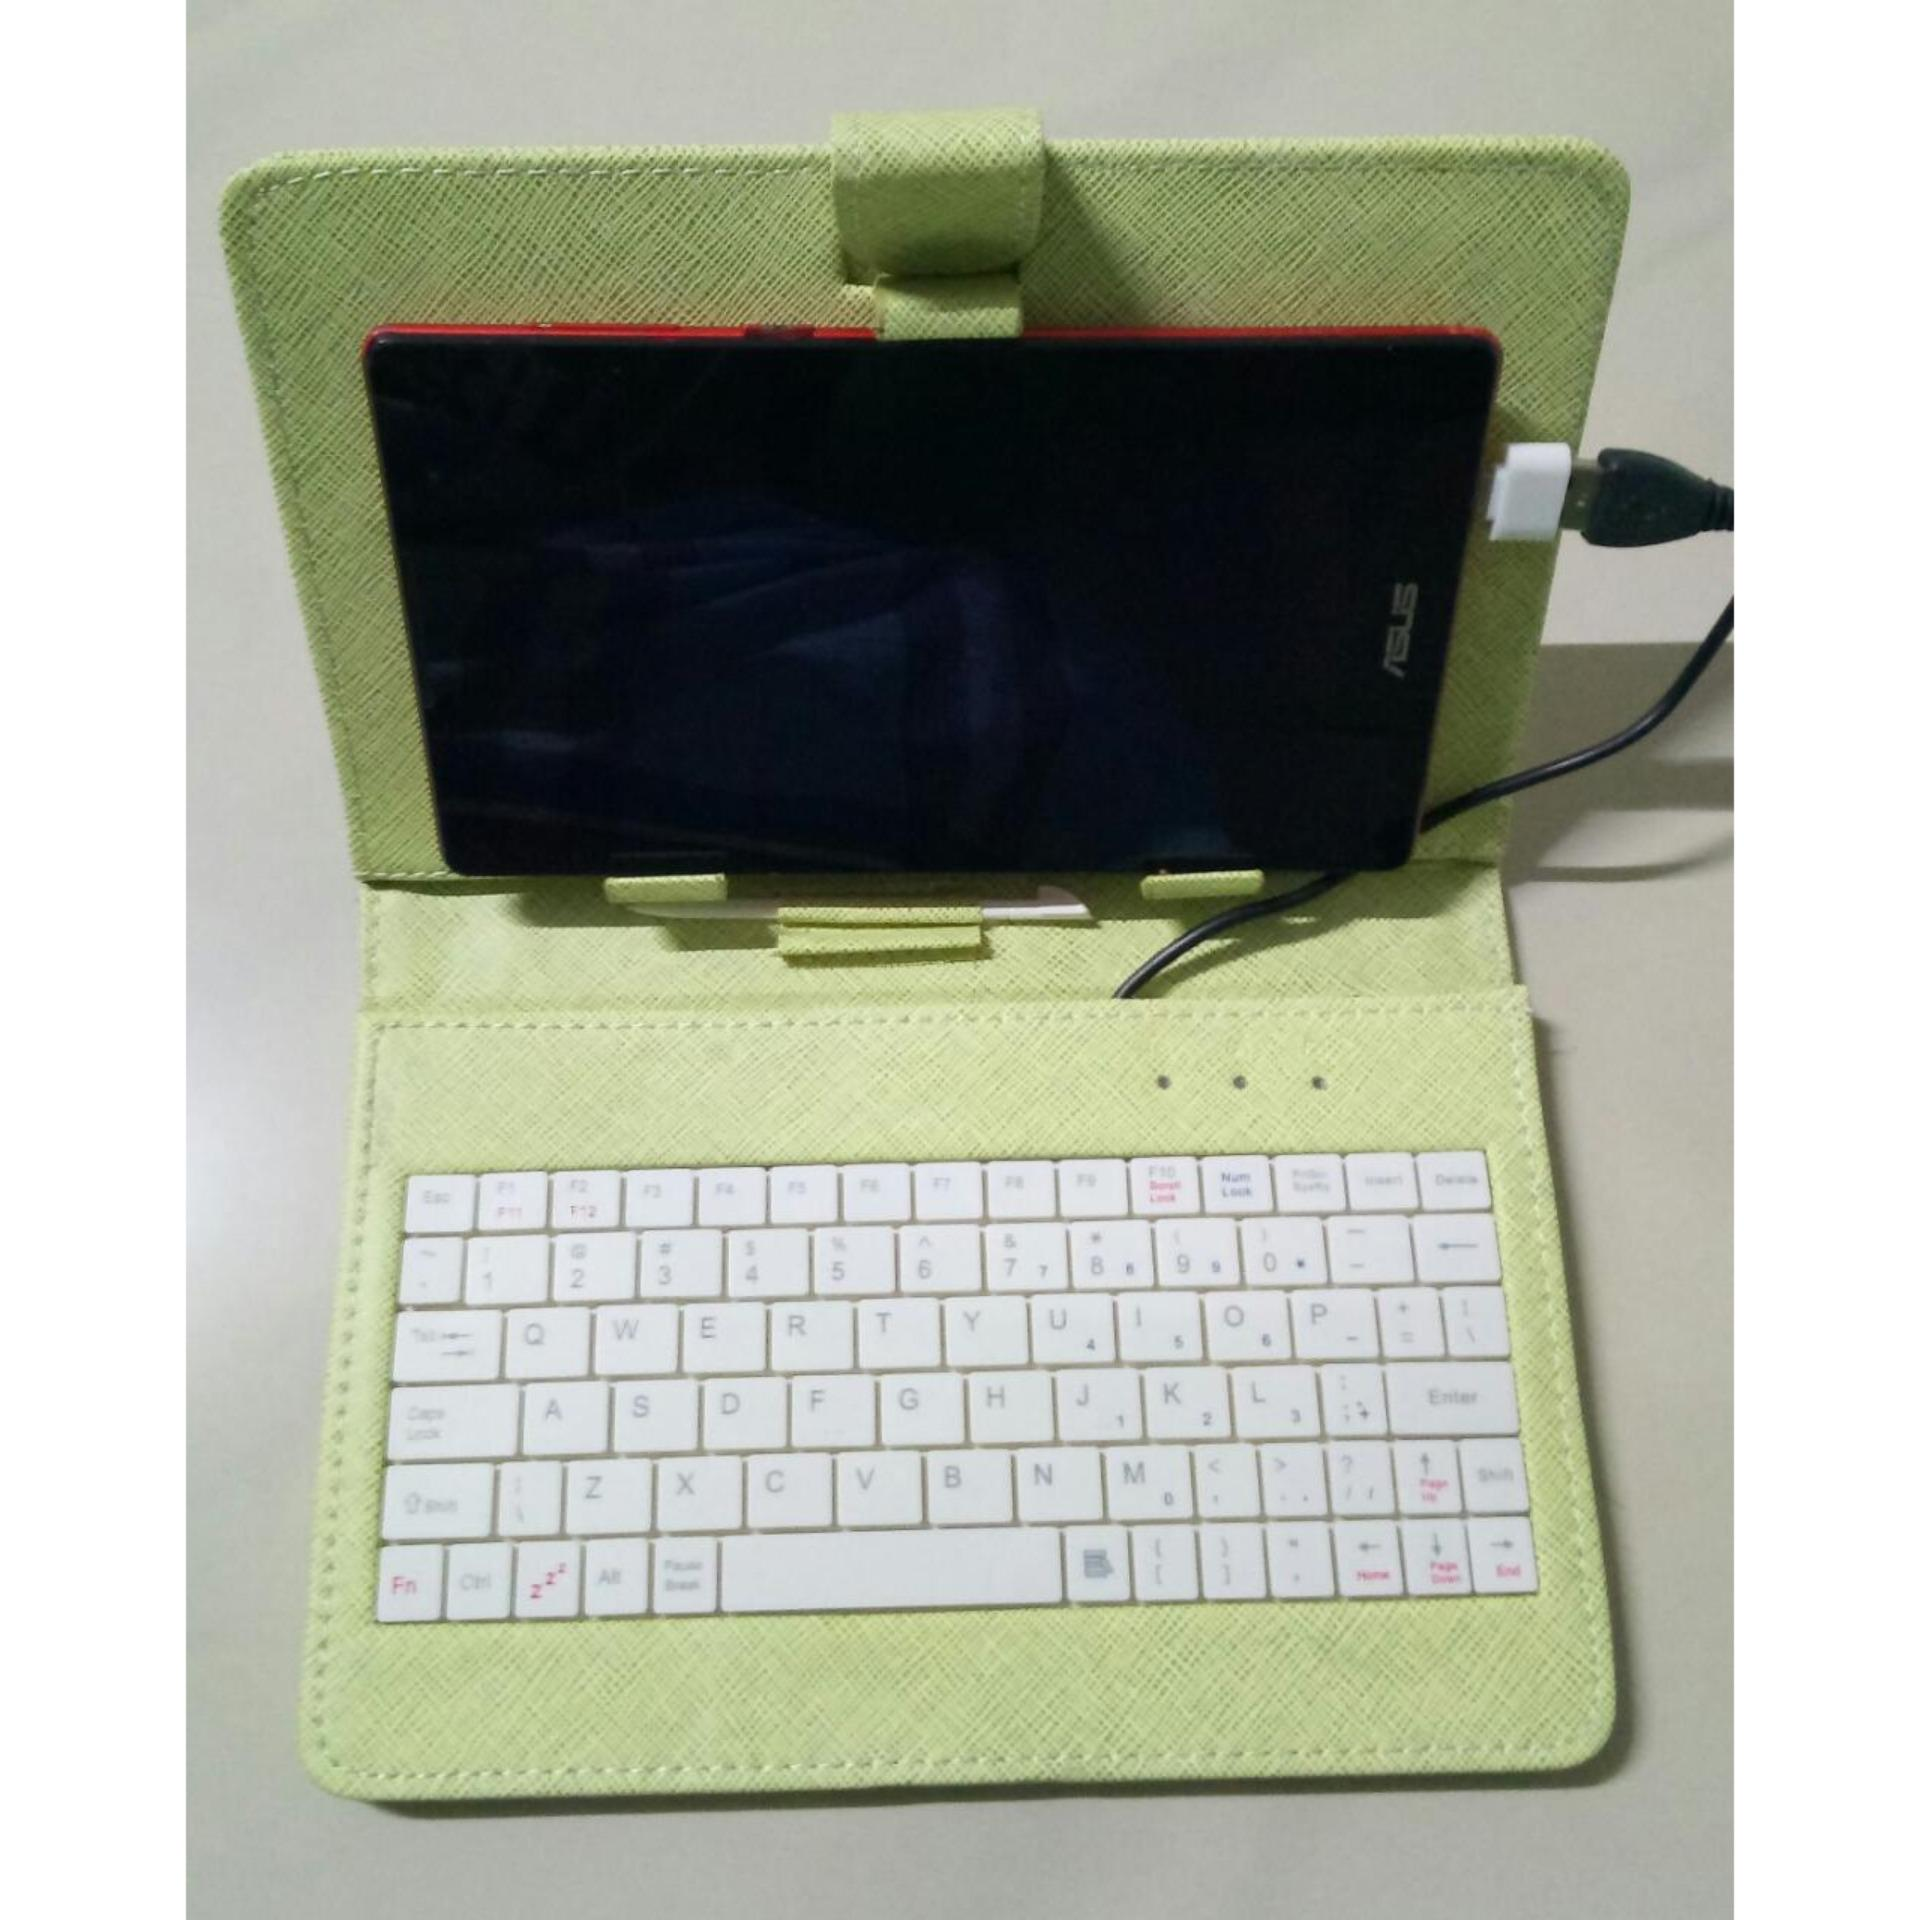 Keyboard Tablet / HP Android / Windows Colokan Micro USB Keyboard Flip Cover Tablet 6